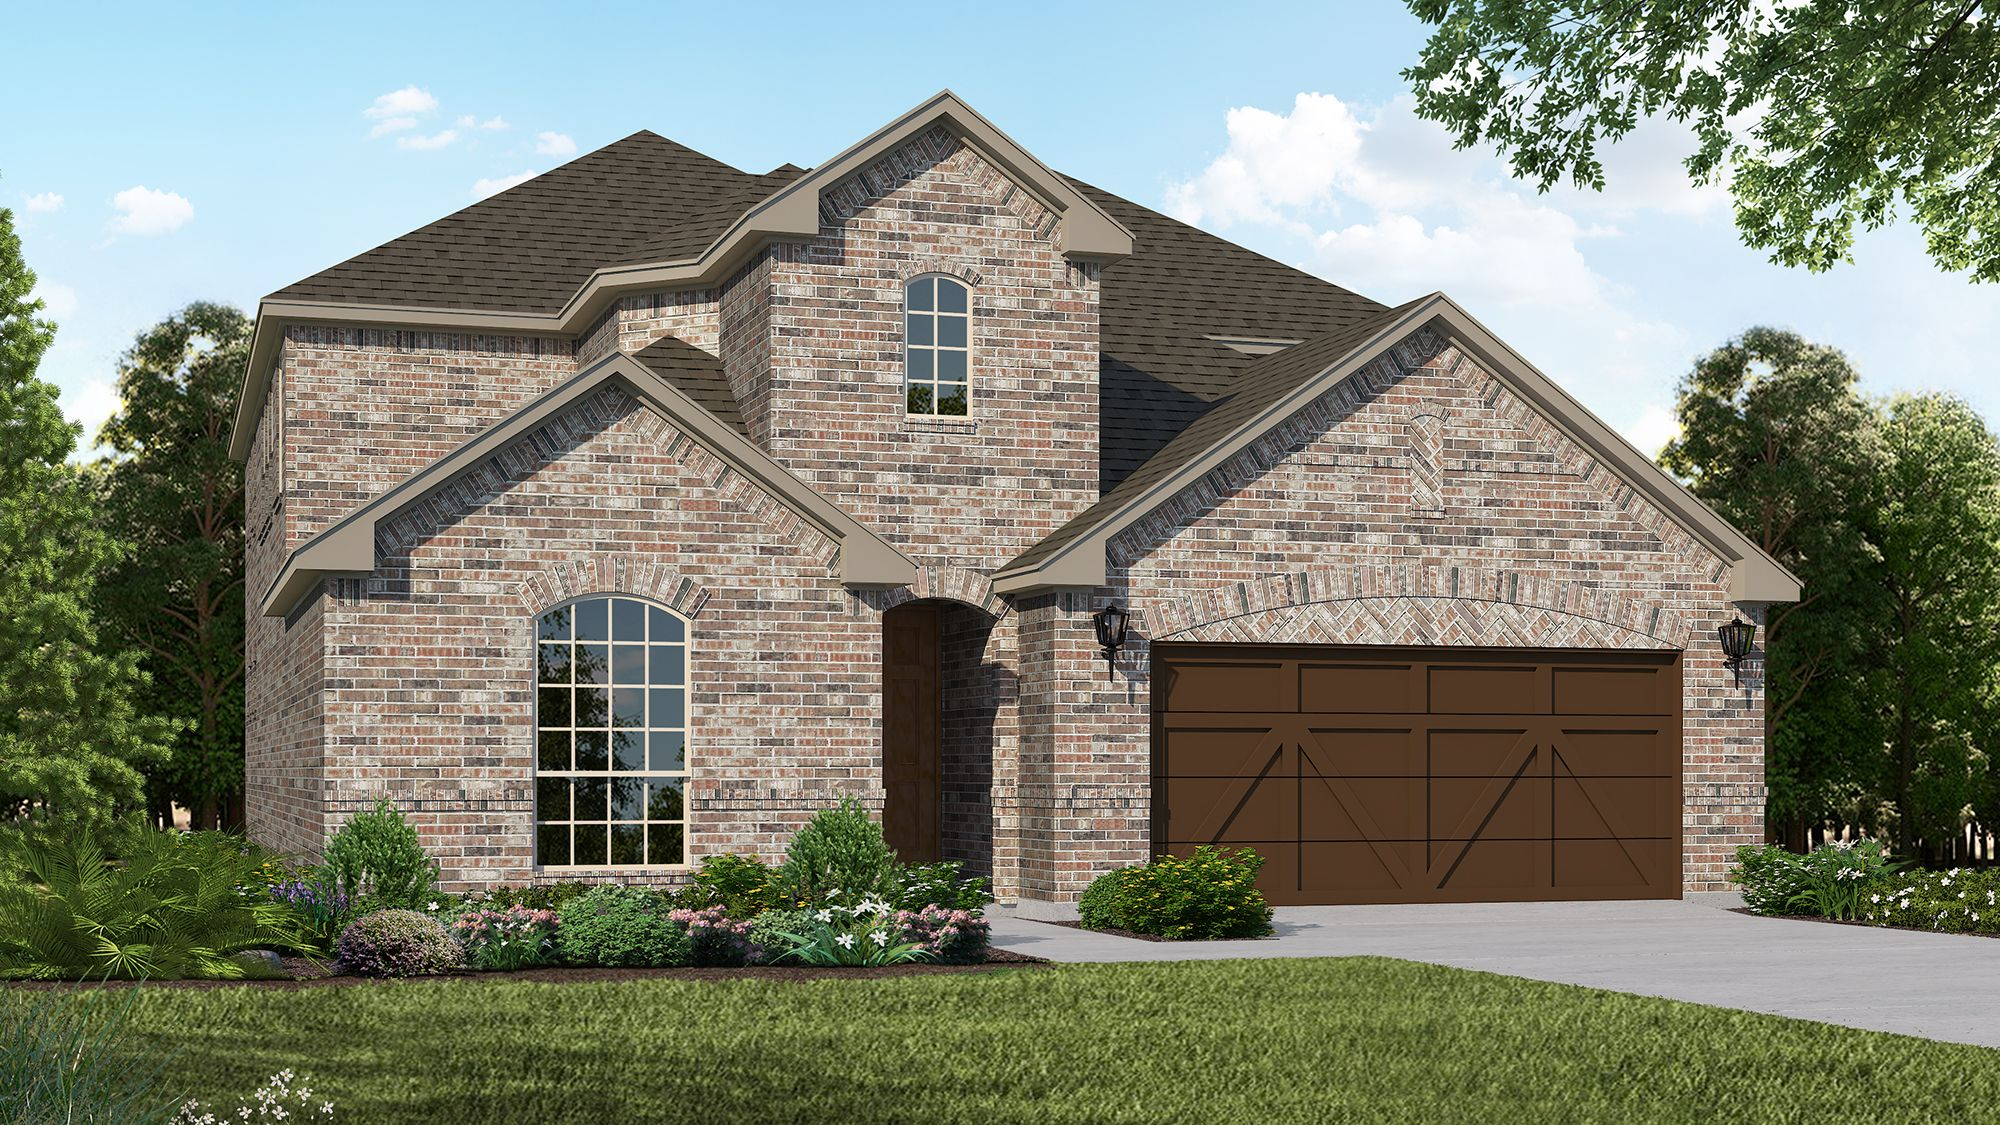 Plan 1527 Elevation A by American Legend Homes